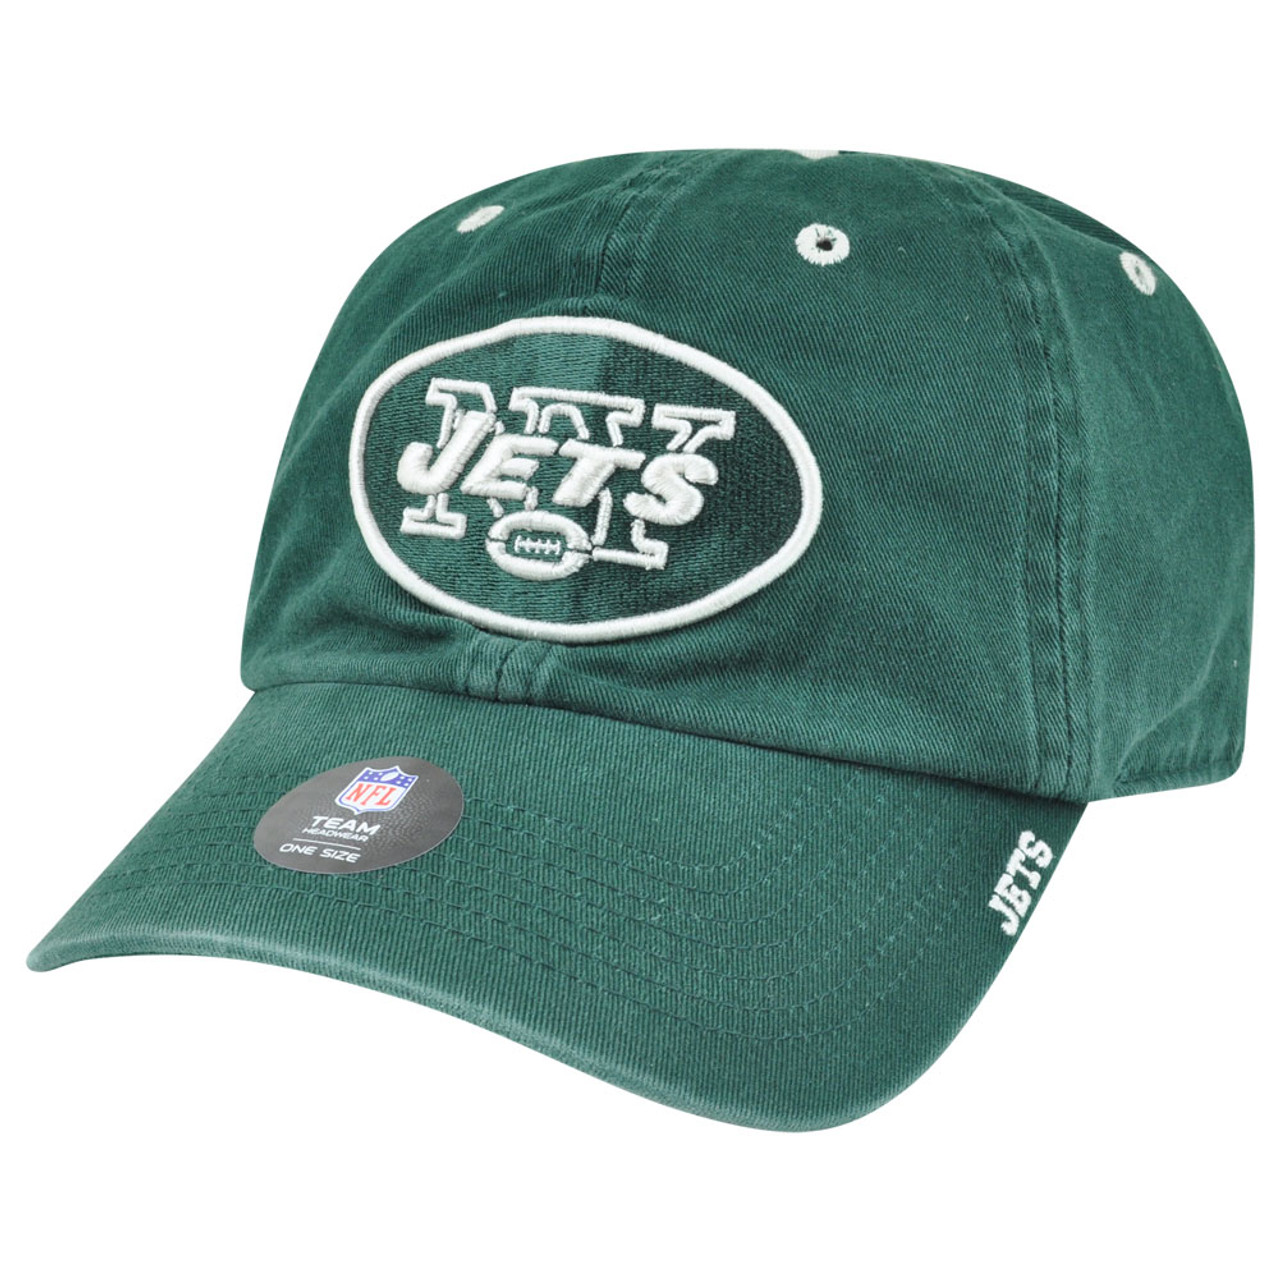 new product 7e175 052ad  47 Brand NFL New York Jets AFC Garment Washed Adjustable Snap Buckle Hat  Cap - Cap Store Online.com